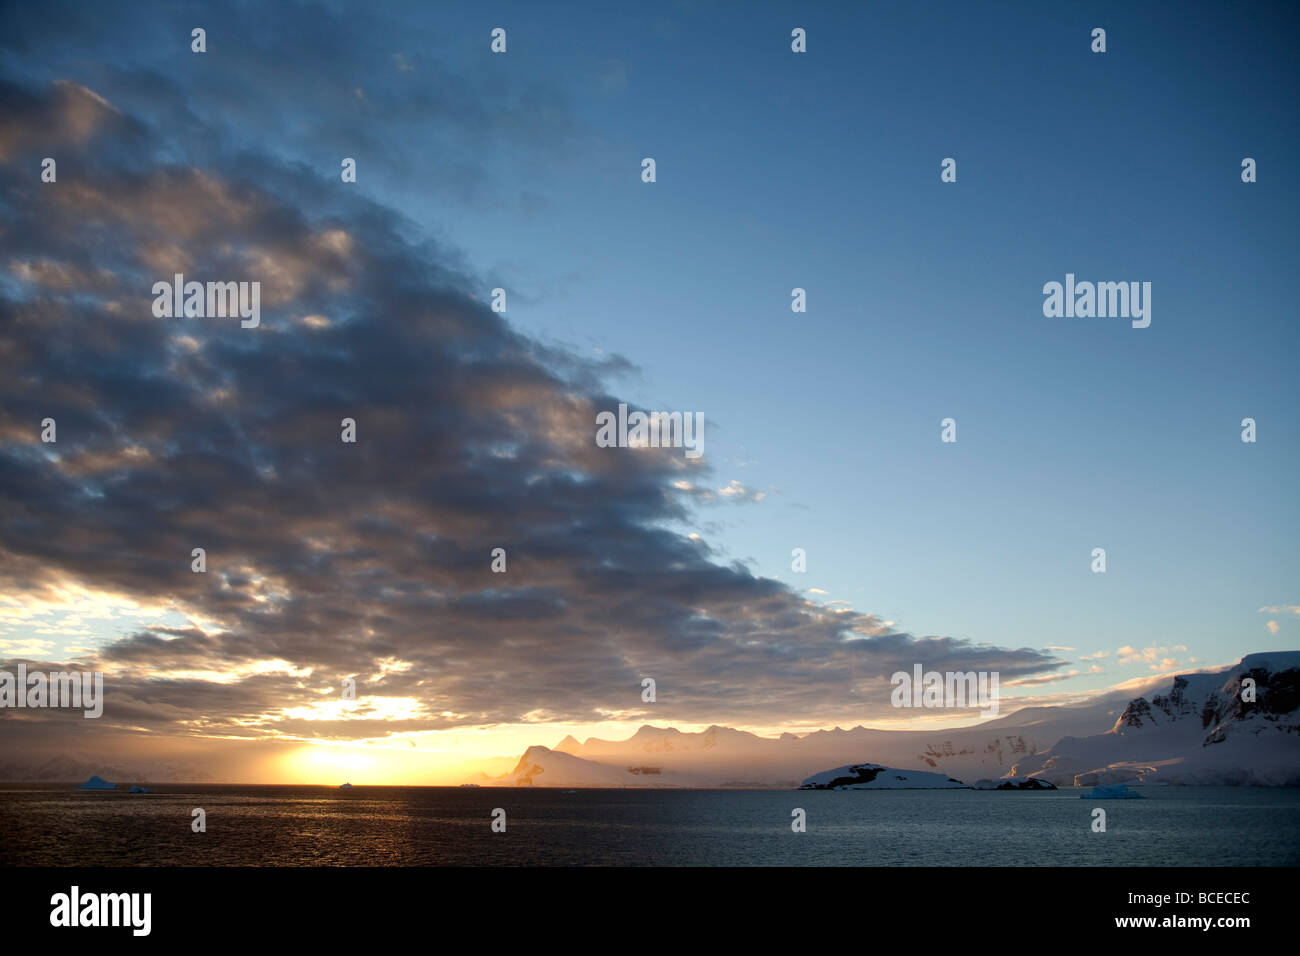 Antarctica, Peninsula. Sunset over the Antarctic Peninsula, the clouds of a cold front being occluded by an area - Stock Image